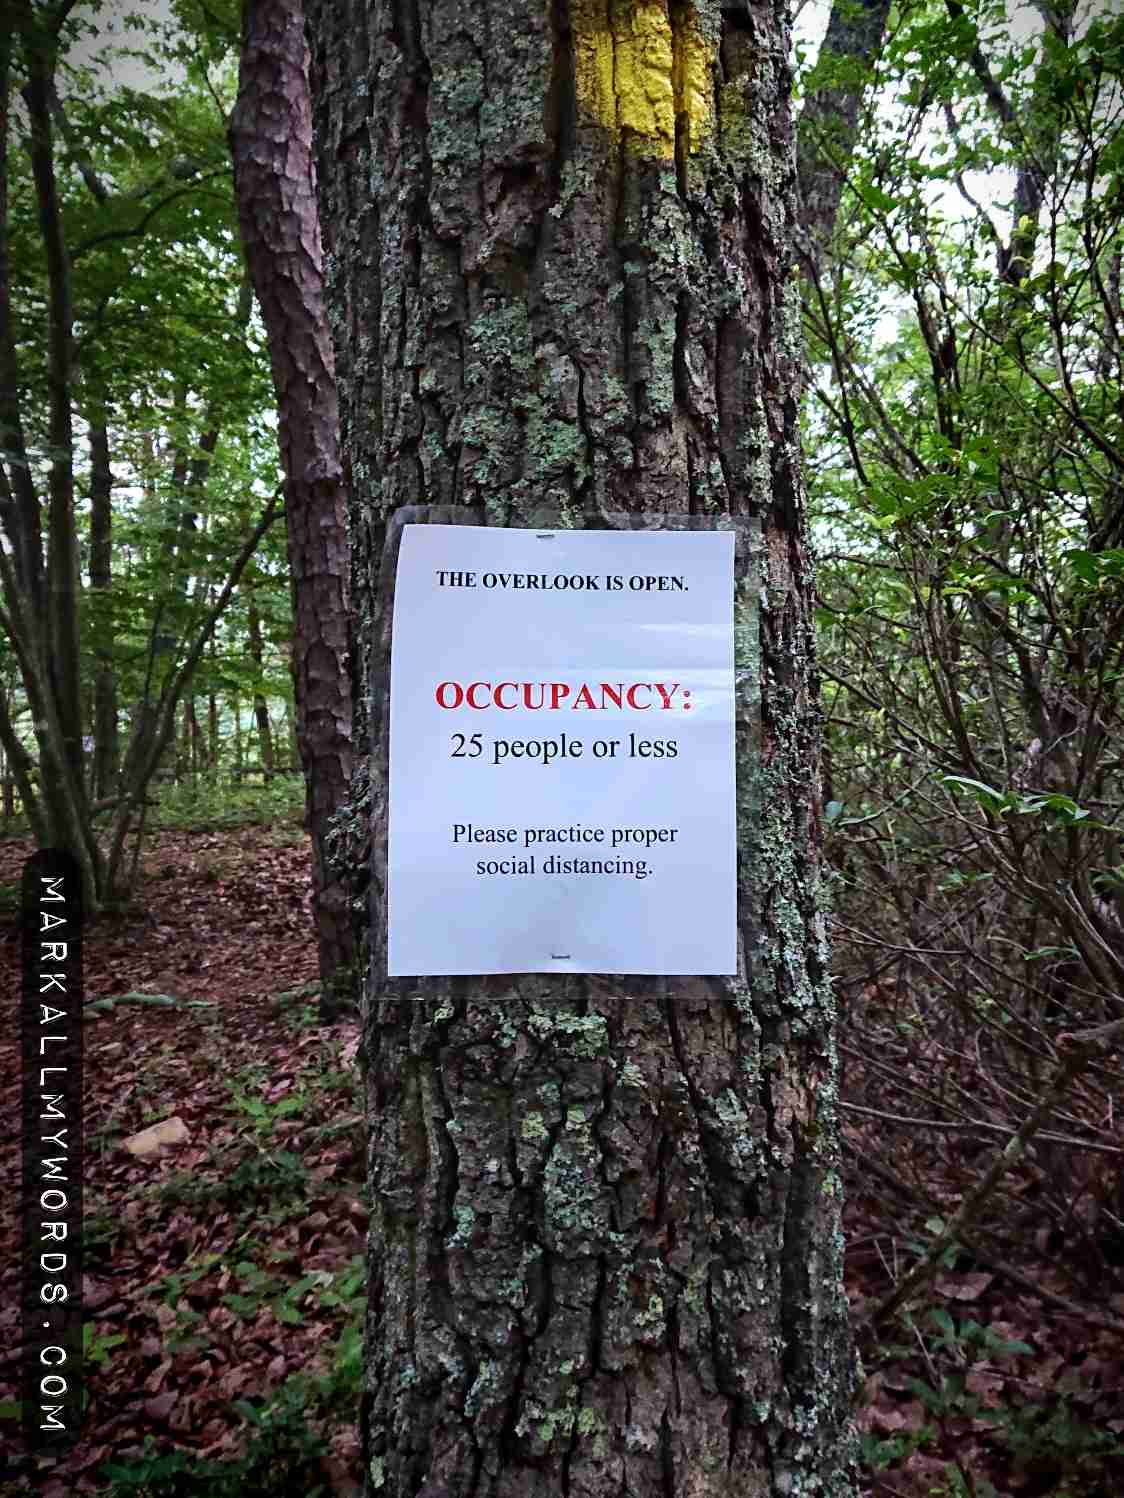 Occupancy sign on tree near Overlook